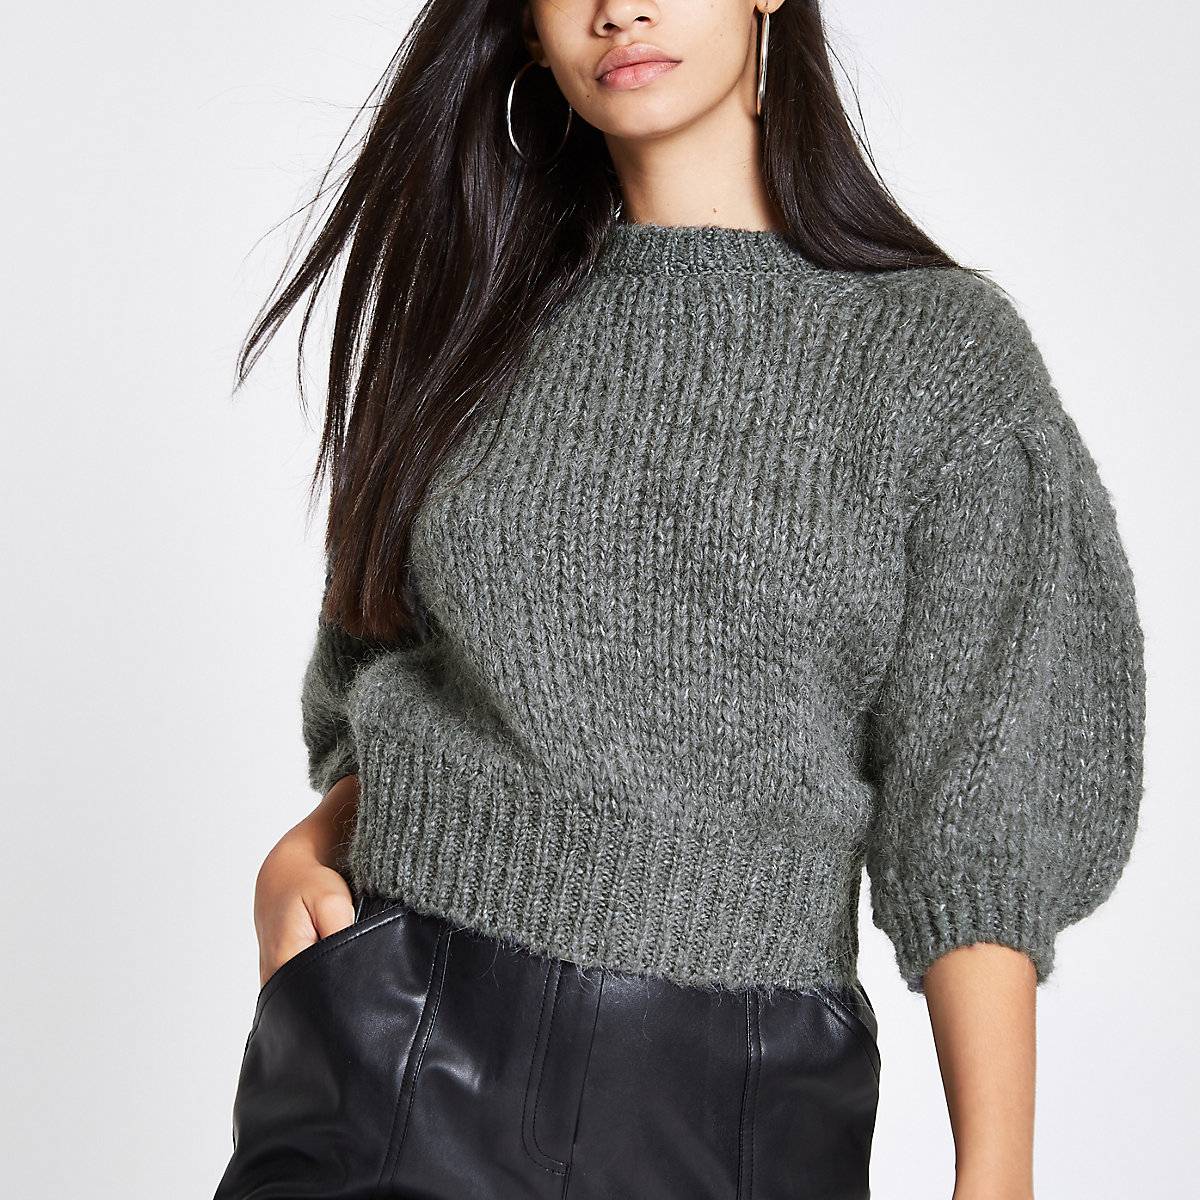 Dark grey knit cropped sweater